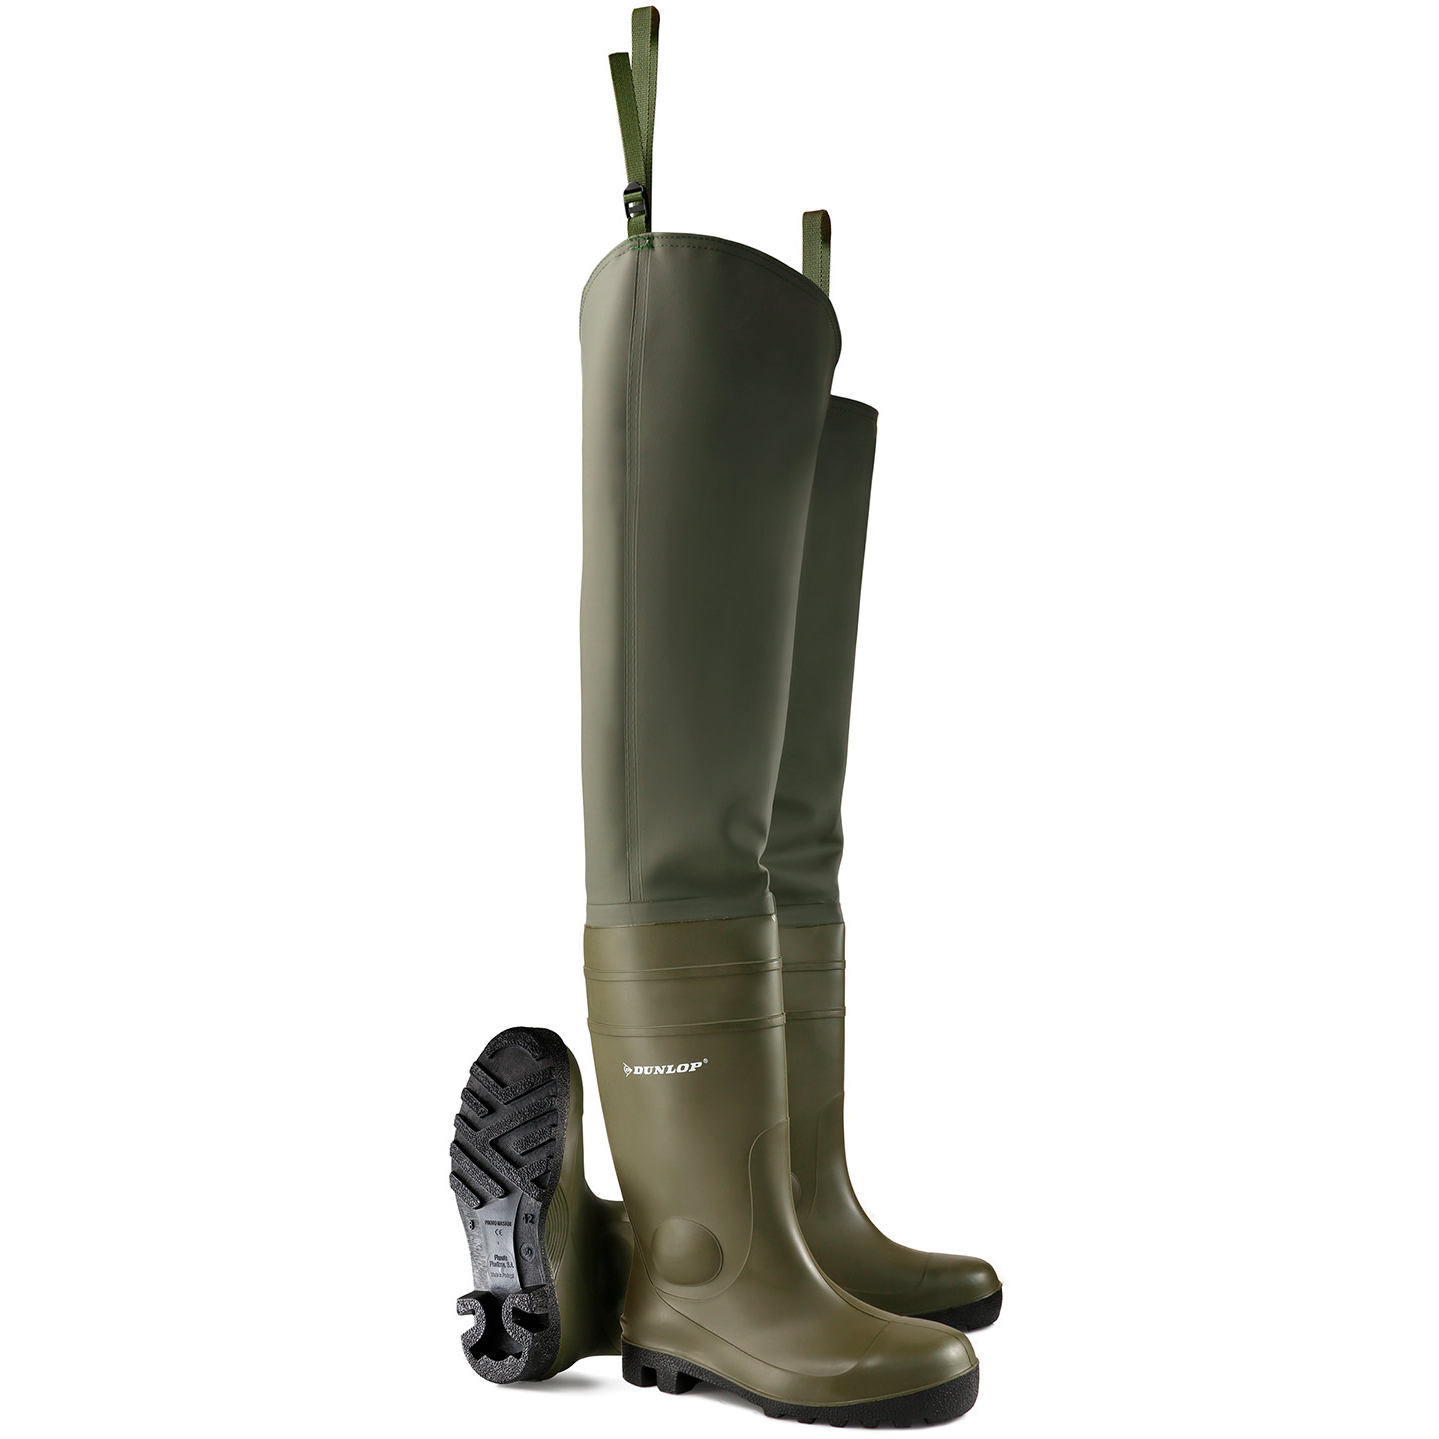 Footwear Dunlop Safety Thigh Wader Size 8 Green Ref PTWFS08 *Up to 3 Day Leadtime*